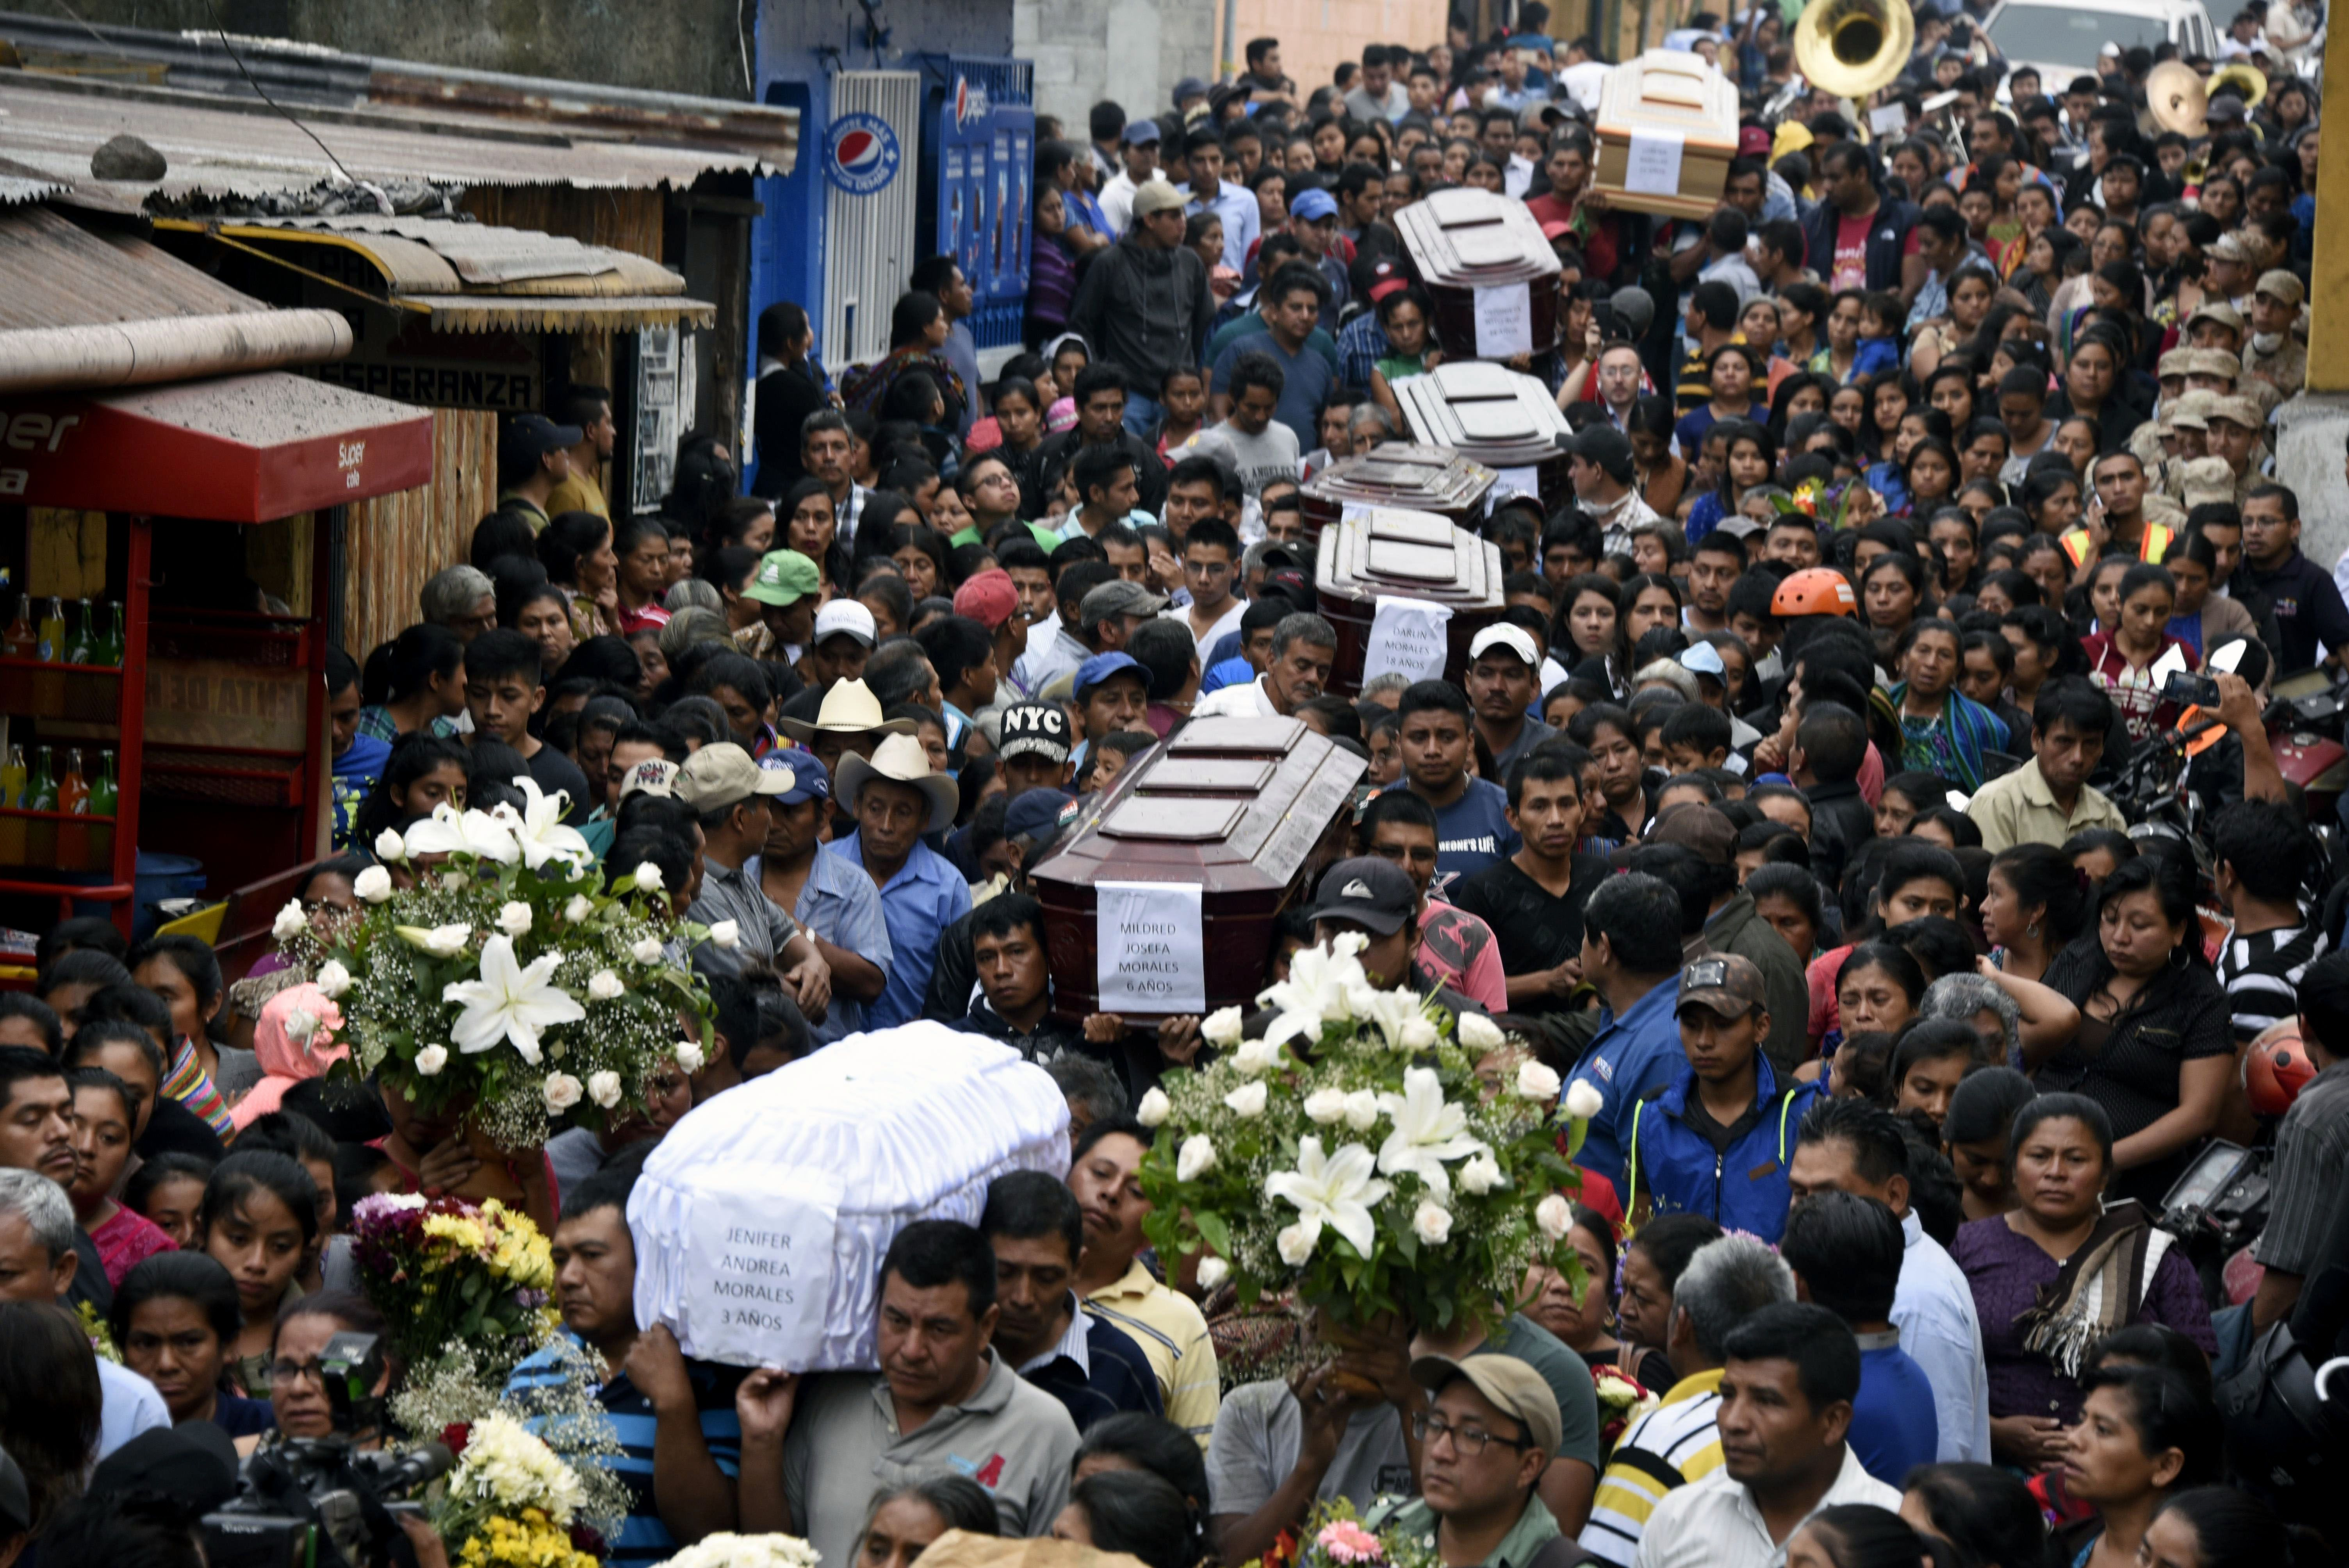 Residents carry the coffins of seven people who died following the eruption of the Fuego volcano.